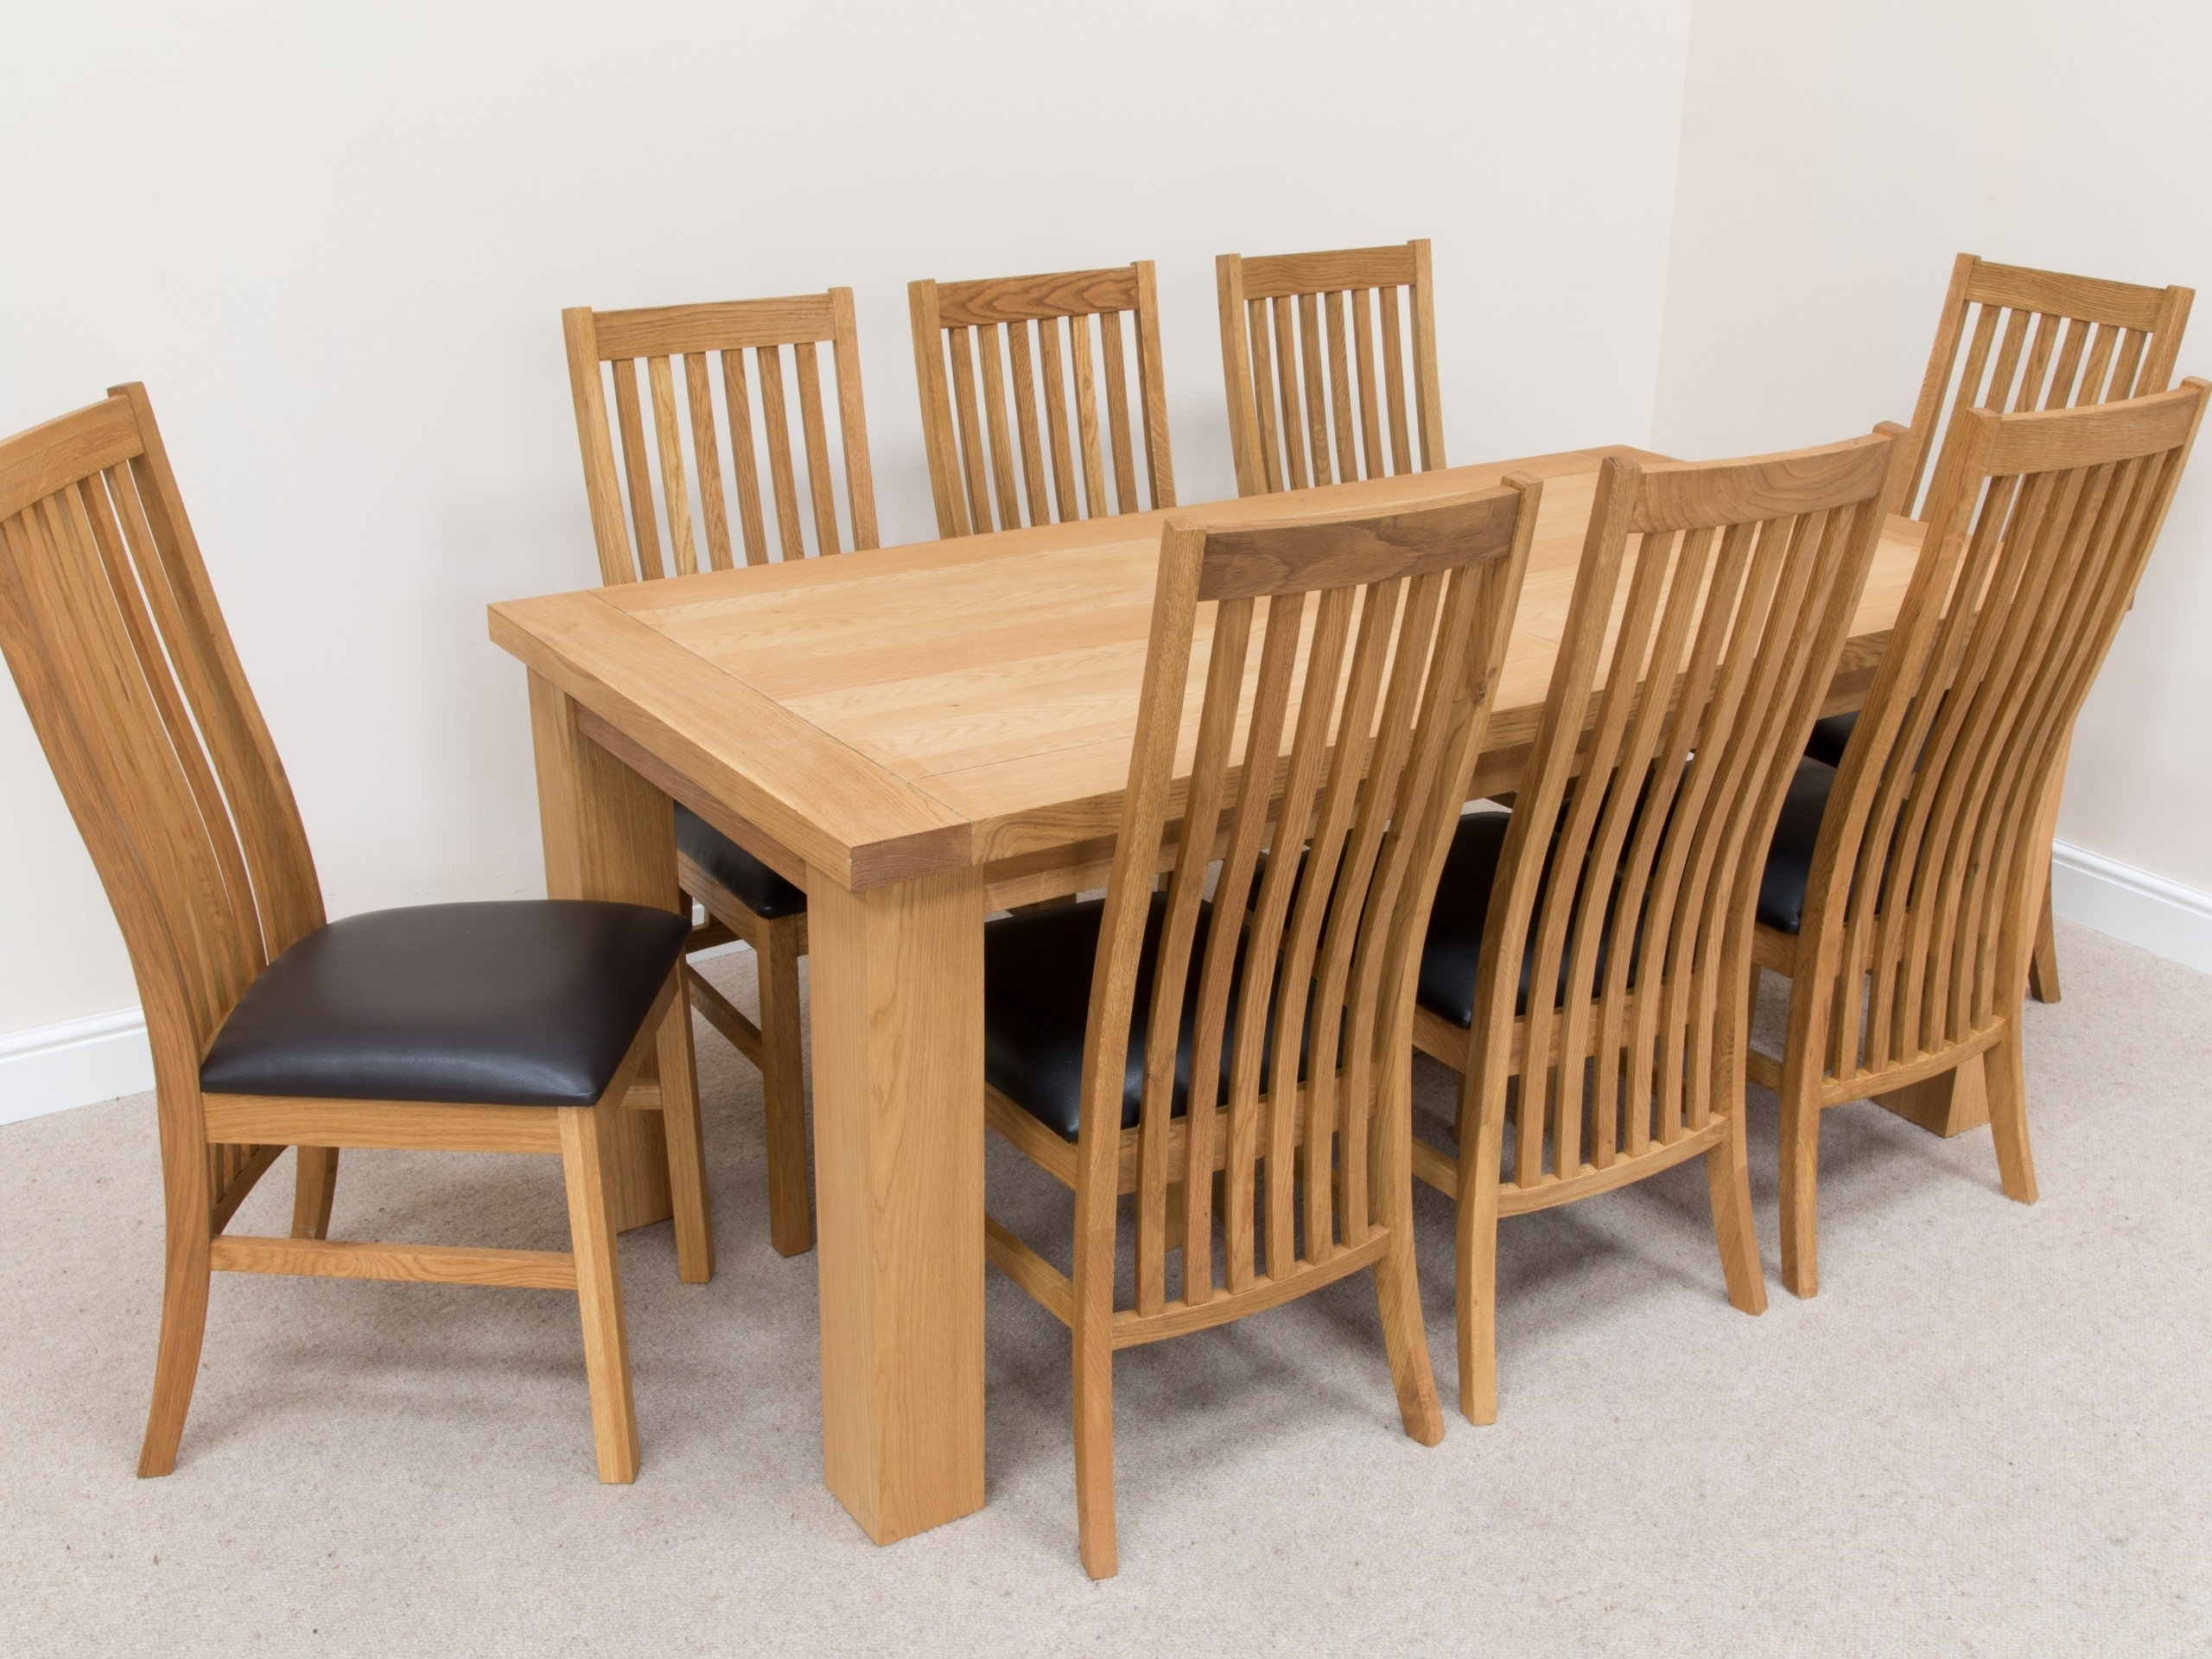 Popular 26 Dining Table Set For 8, Marina Marble Dining Table With 8 Chairs Regarding Sheesham Dining Tables 8 Chairs (View 15 of 25)